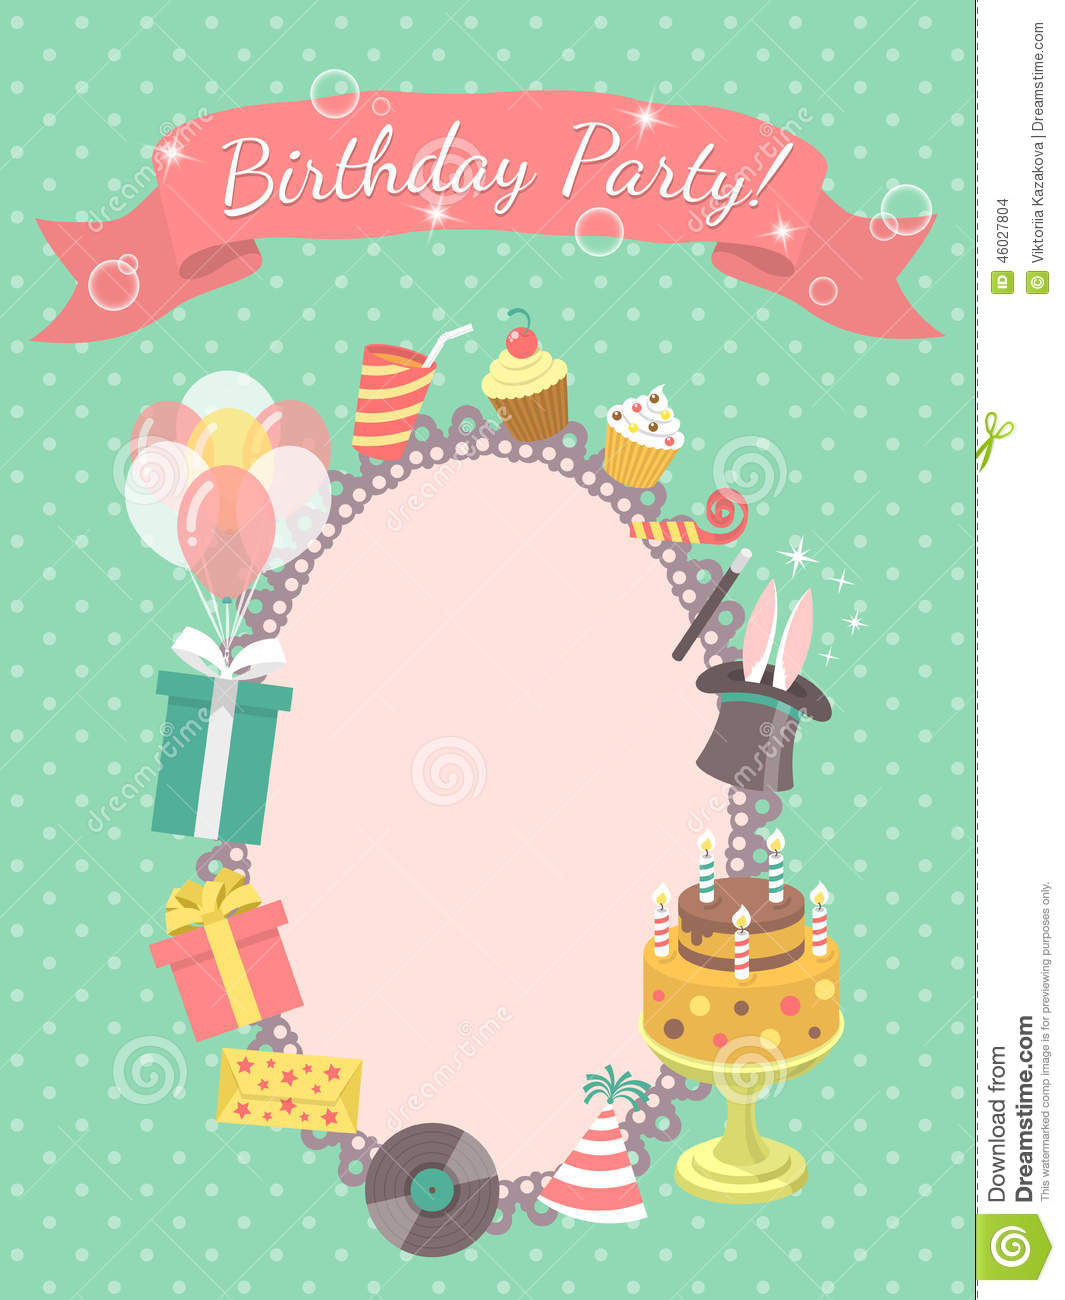 birthday card party ; birthday-party-invitation-card-modern-flat-symbols-such-as-gifts-balloons-cake-candles-46027804